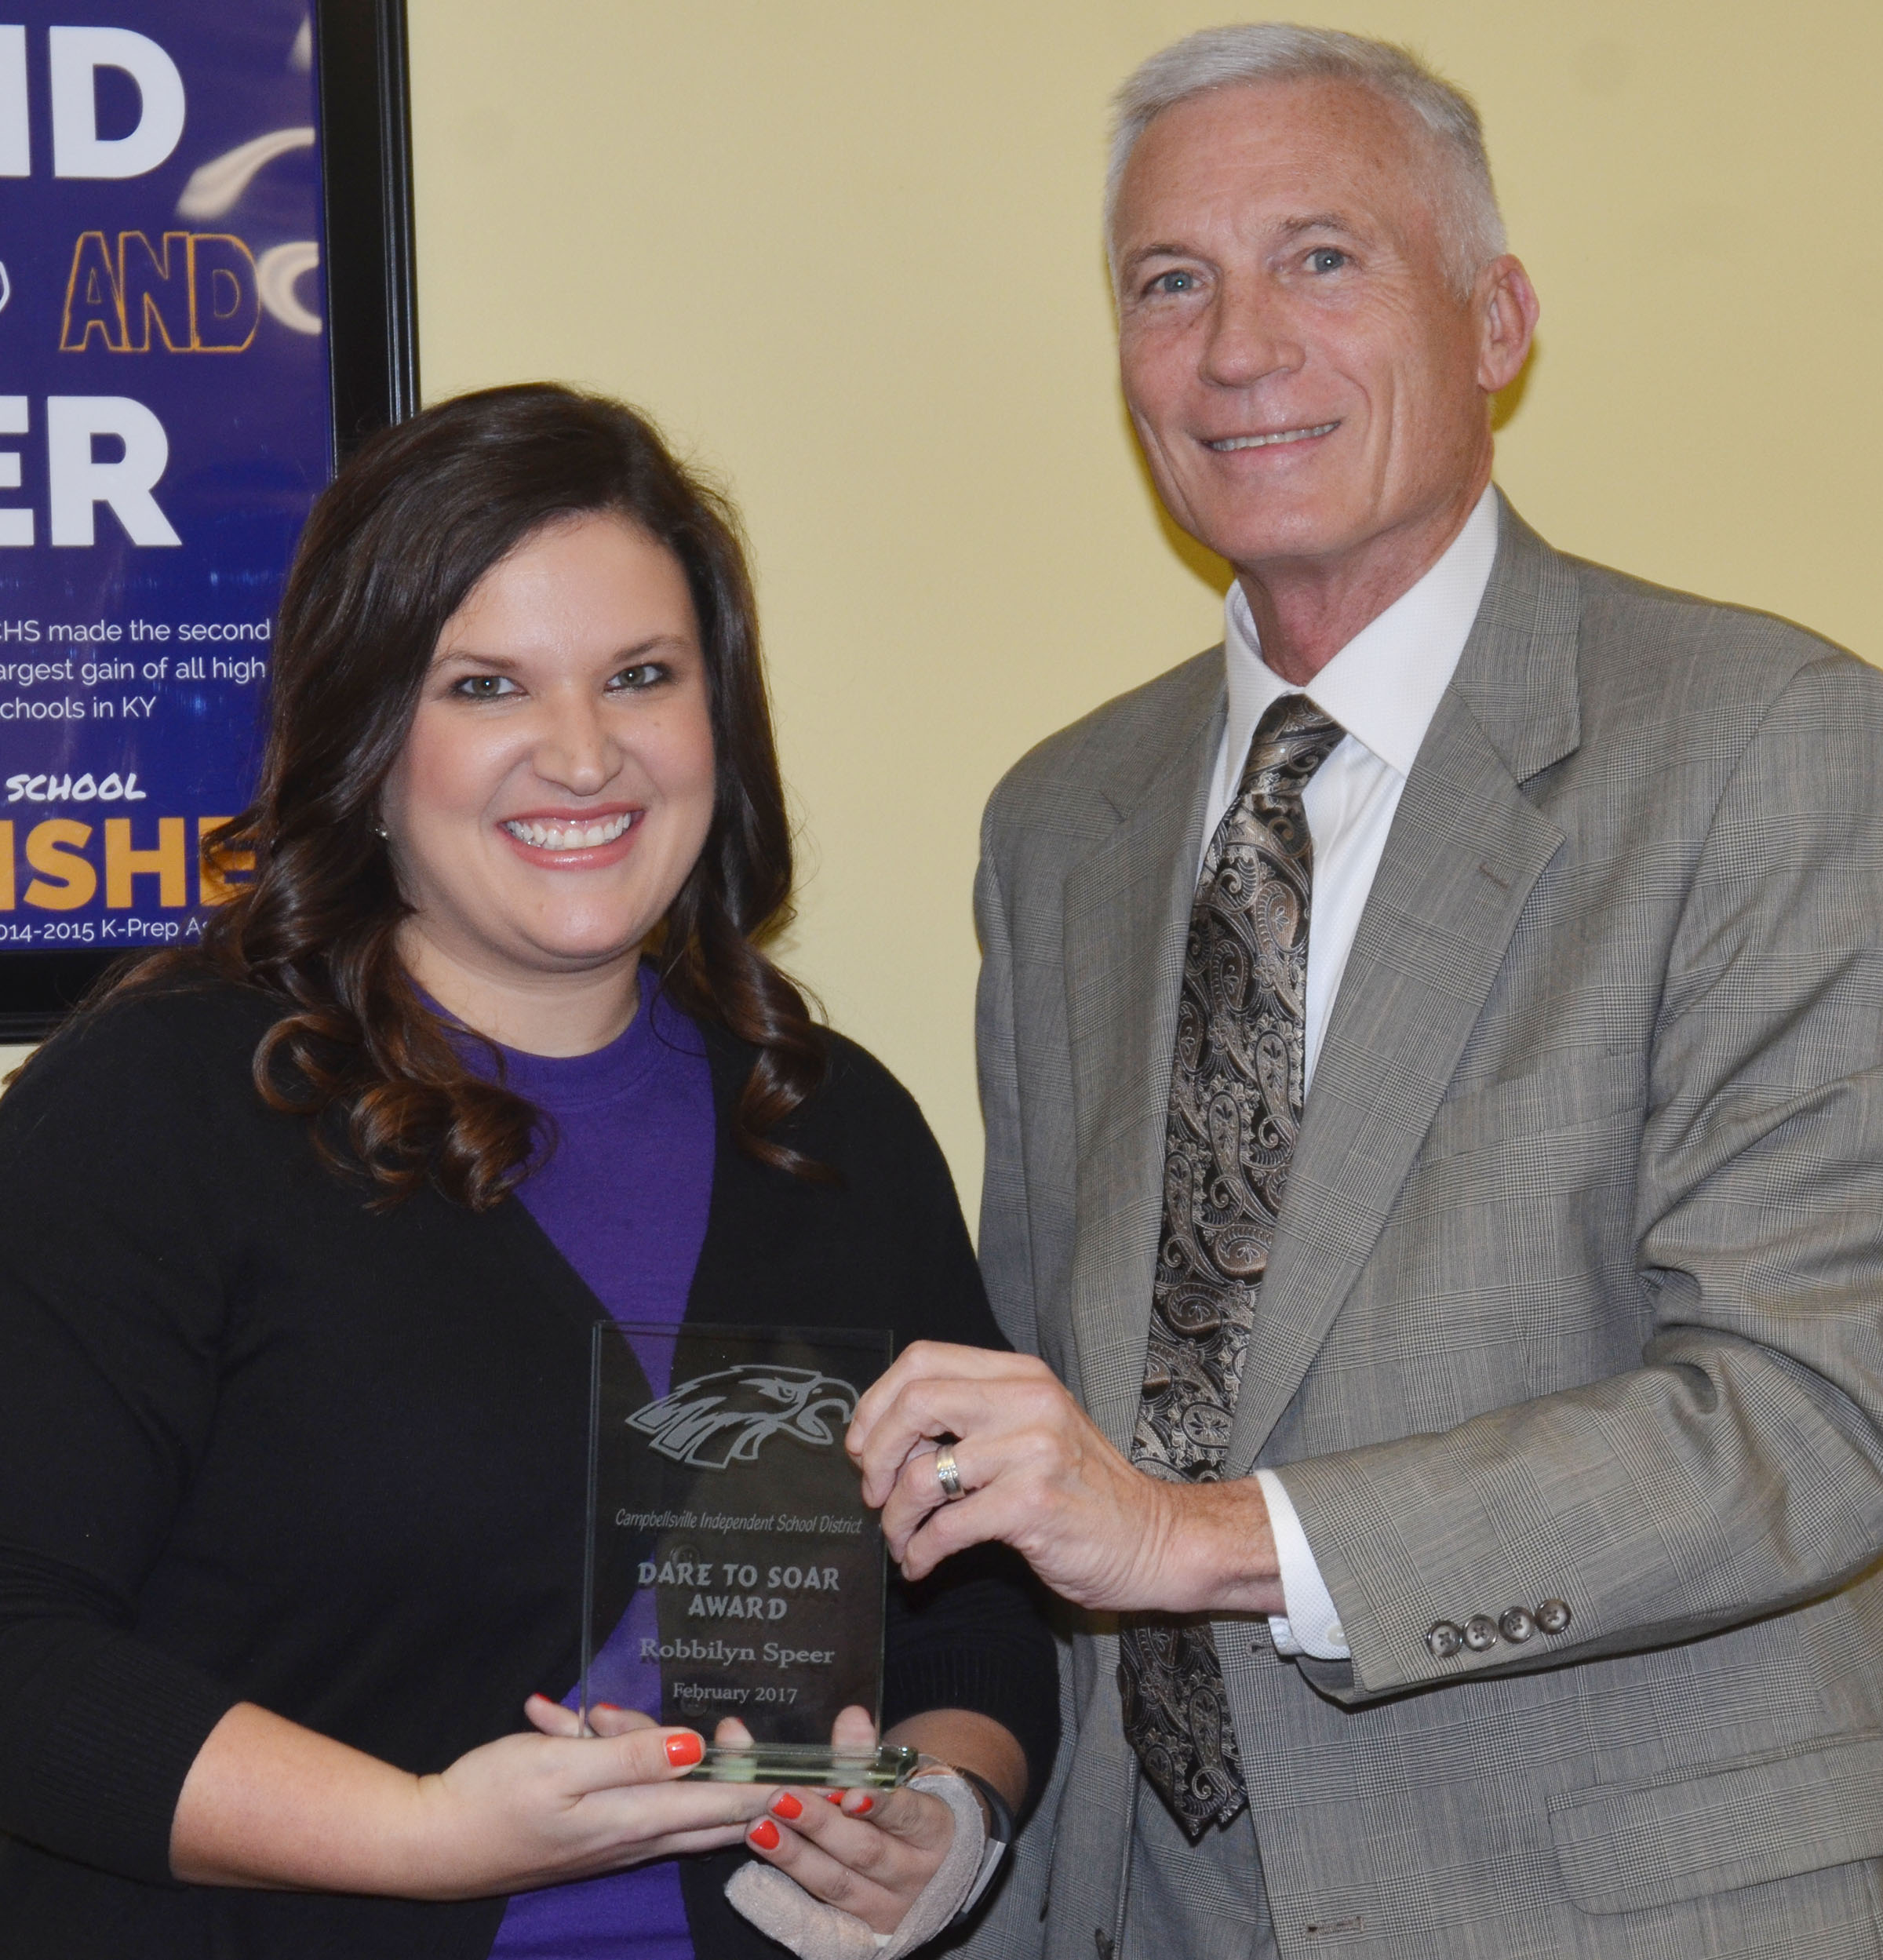 CMS eighth-grade teacher Robbilyn Speer received the Dare to Soar award at the Campbellsville Board of Education's regular meeting on Monday, Feb. 13. Campbellsville Independent Schools Superintendent Mike Deaton made the presentation.